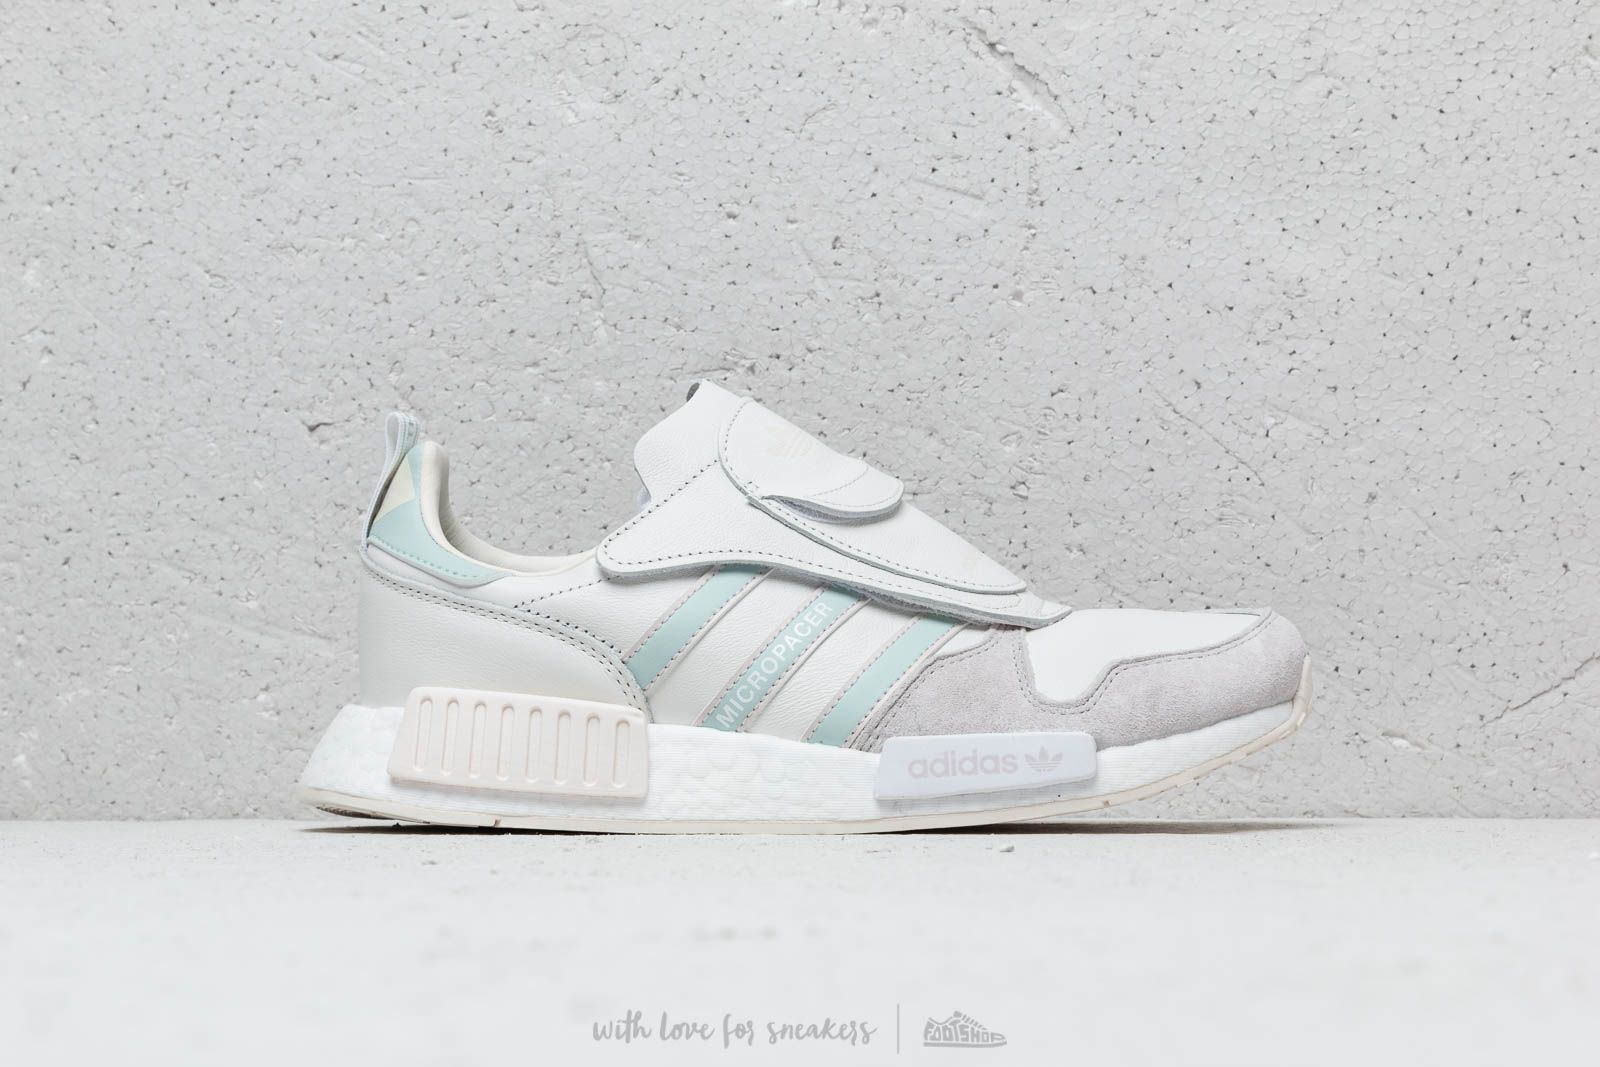 e52f4aeff2cc adidas Micropacer x R1 Cloud White  Ftw White   Grey One at a great price